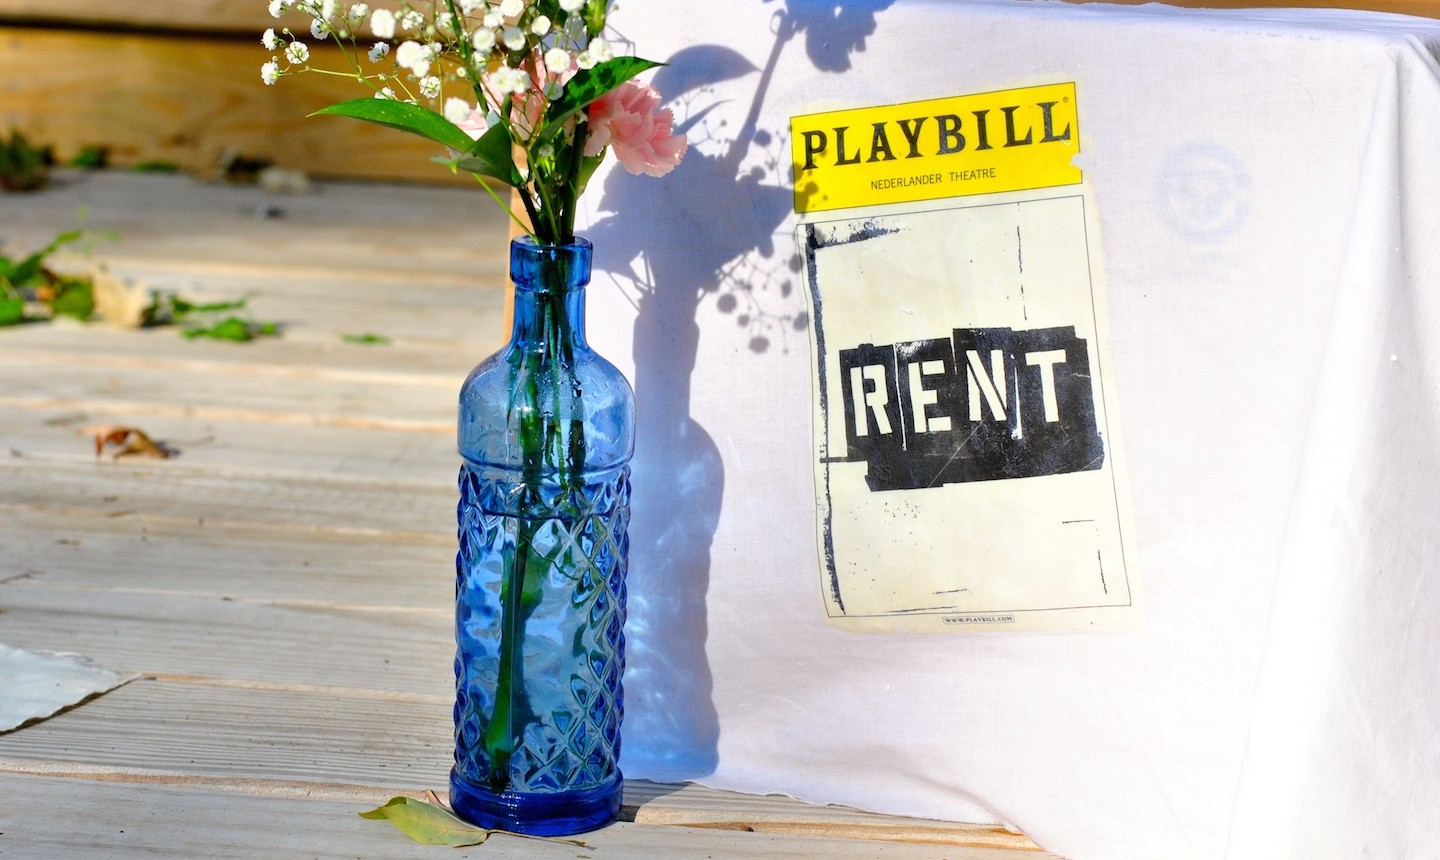 Flowers and playbill